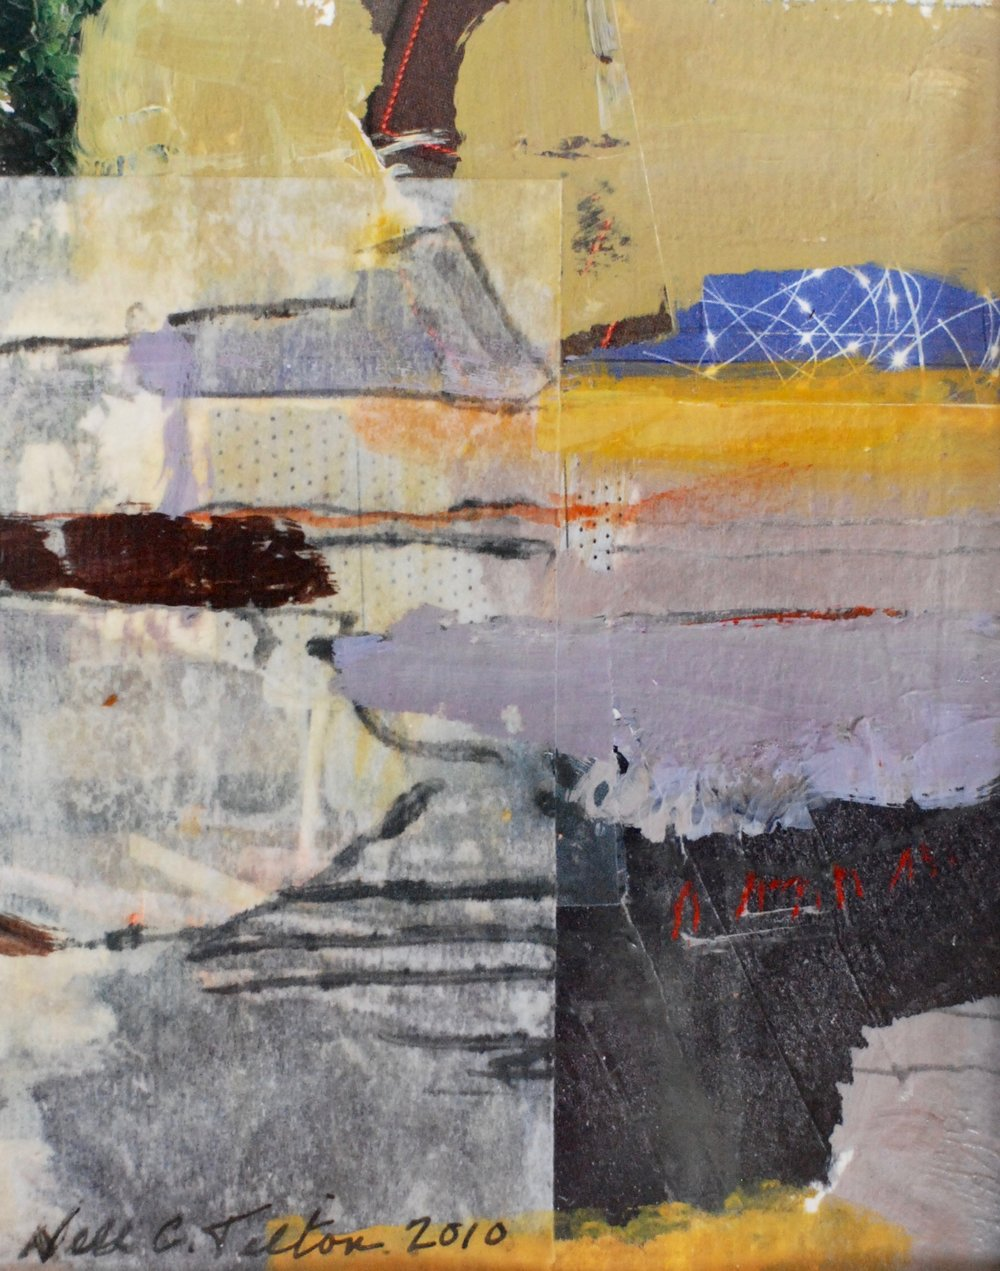 "WONDERMENT 5"" x 4"" Collage/Mixed Media on Paper"